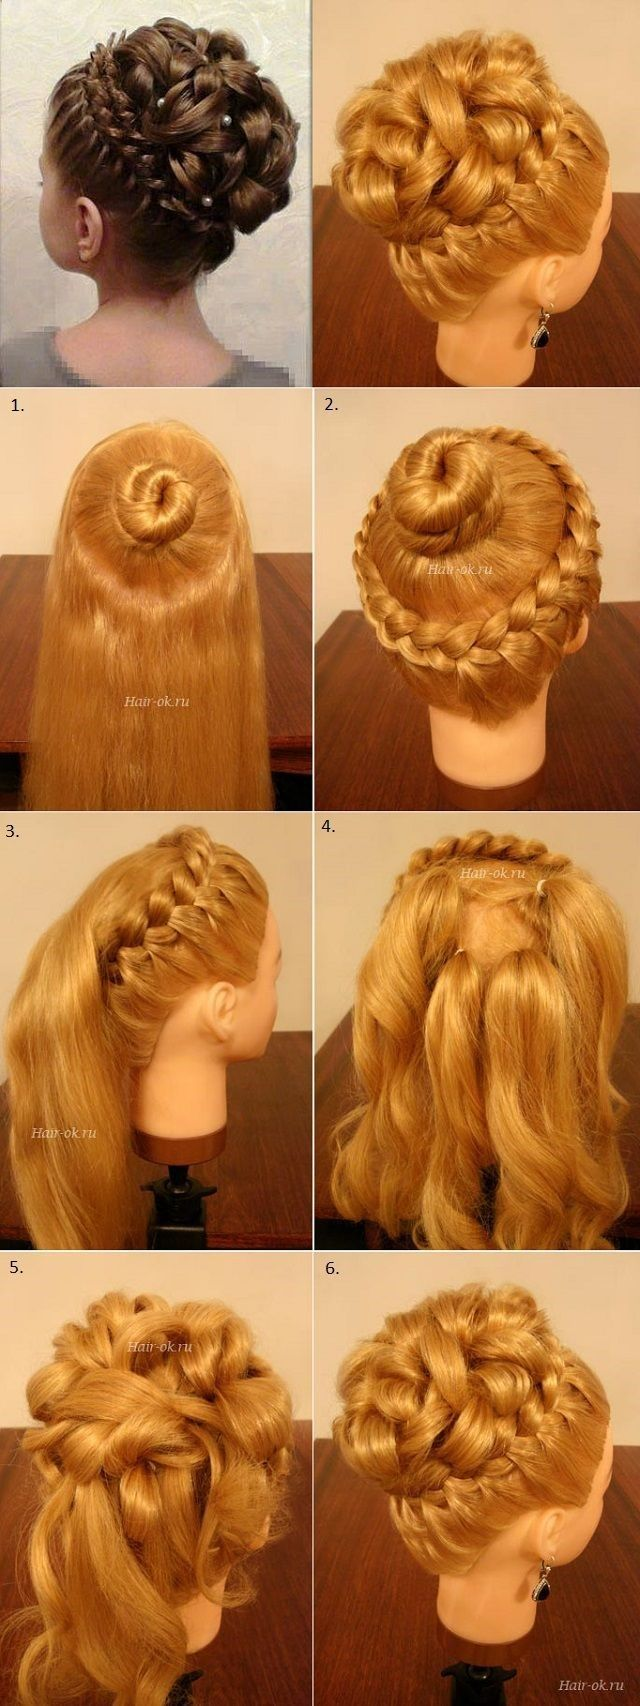 Hairstyle With Curls DIY